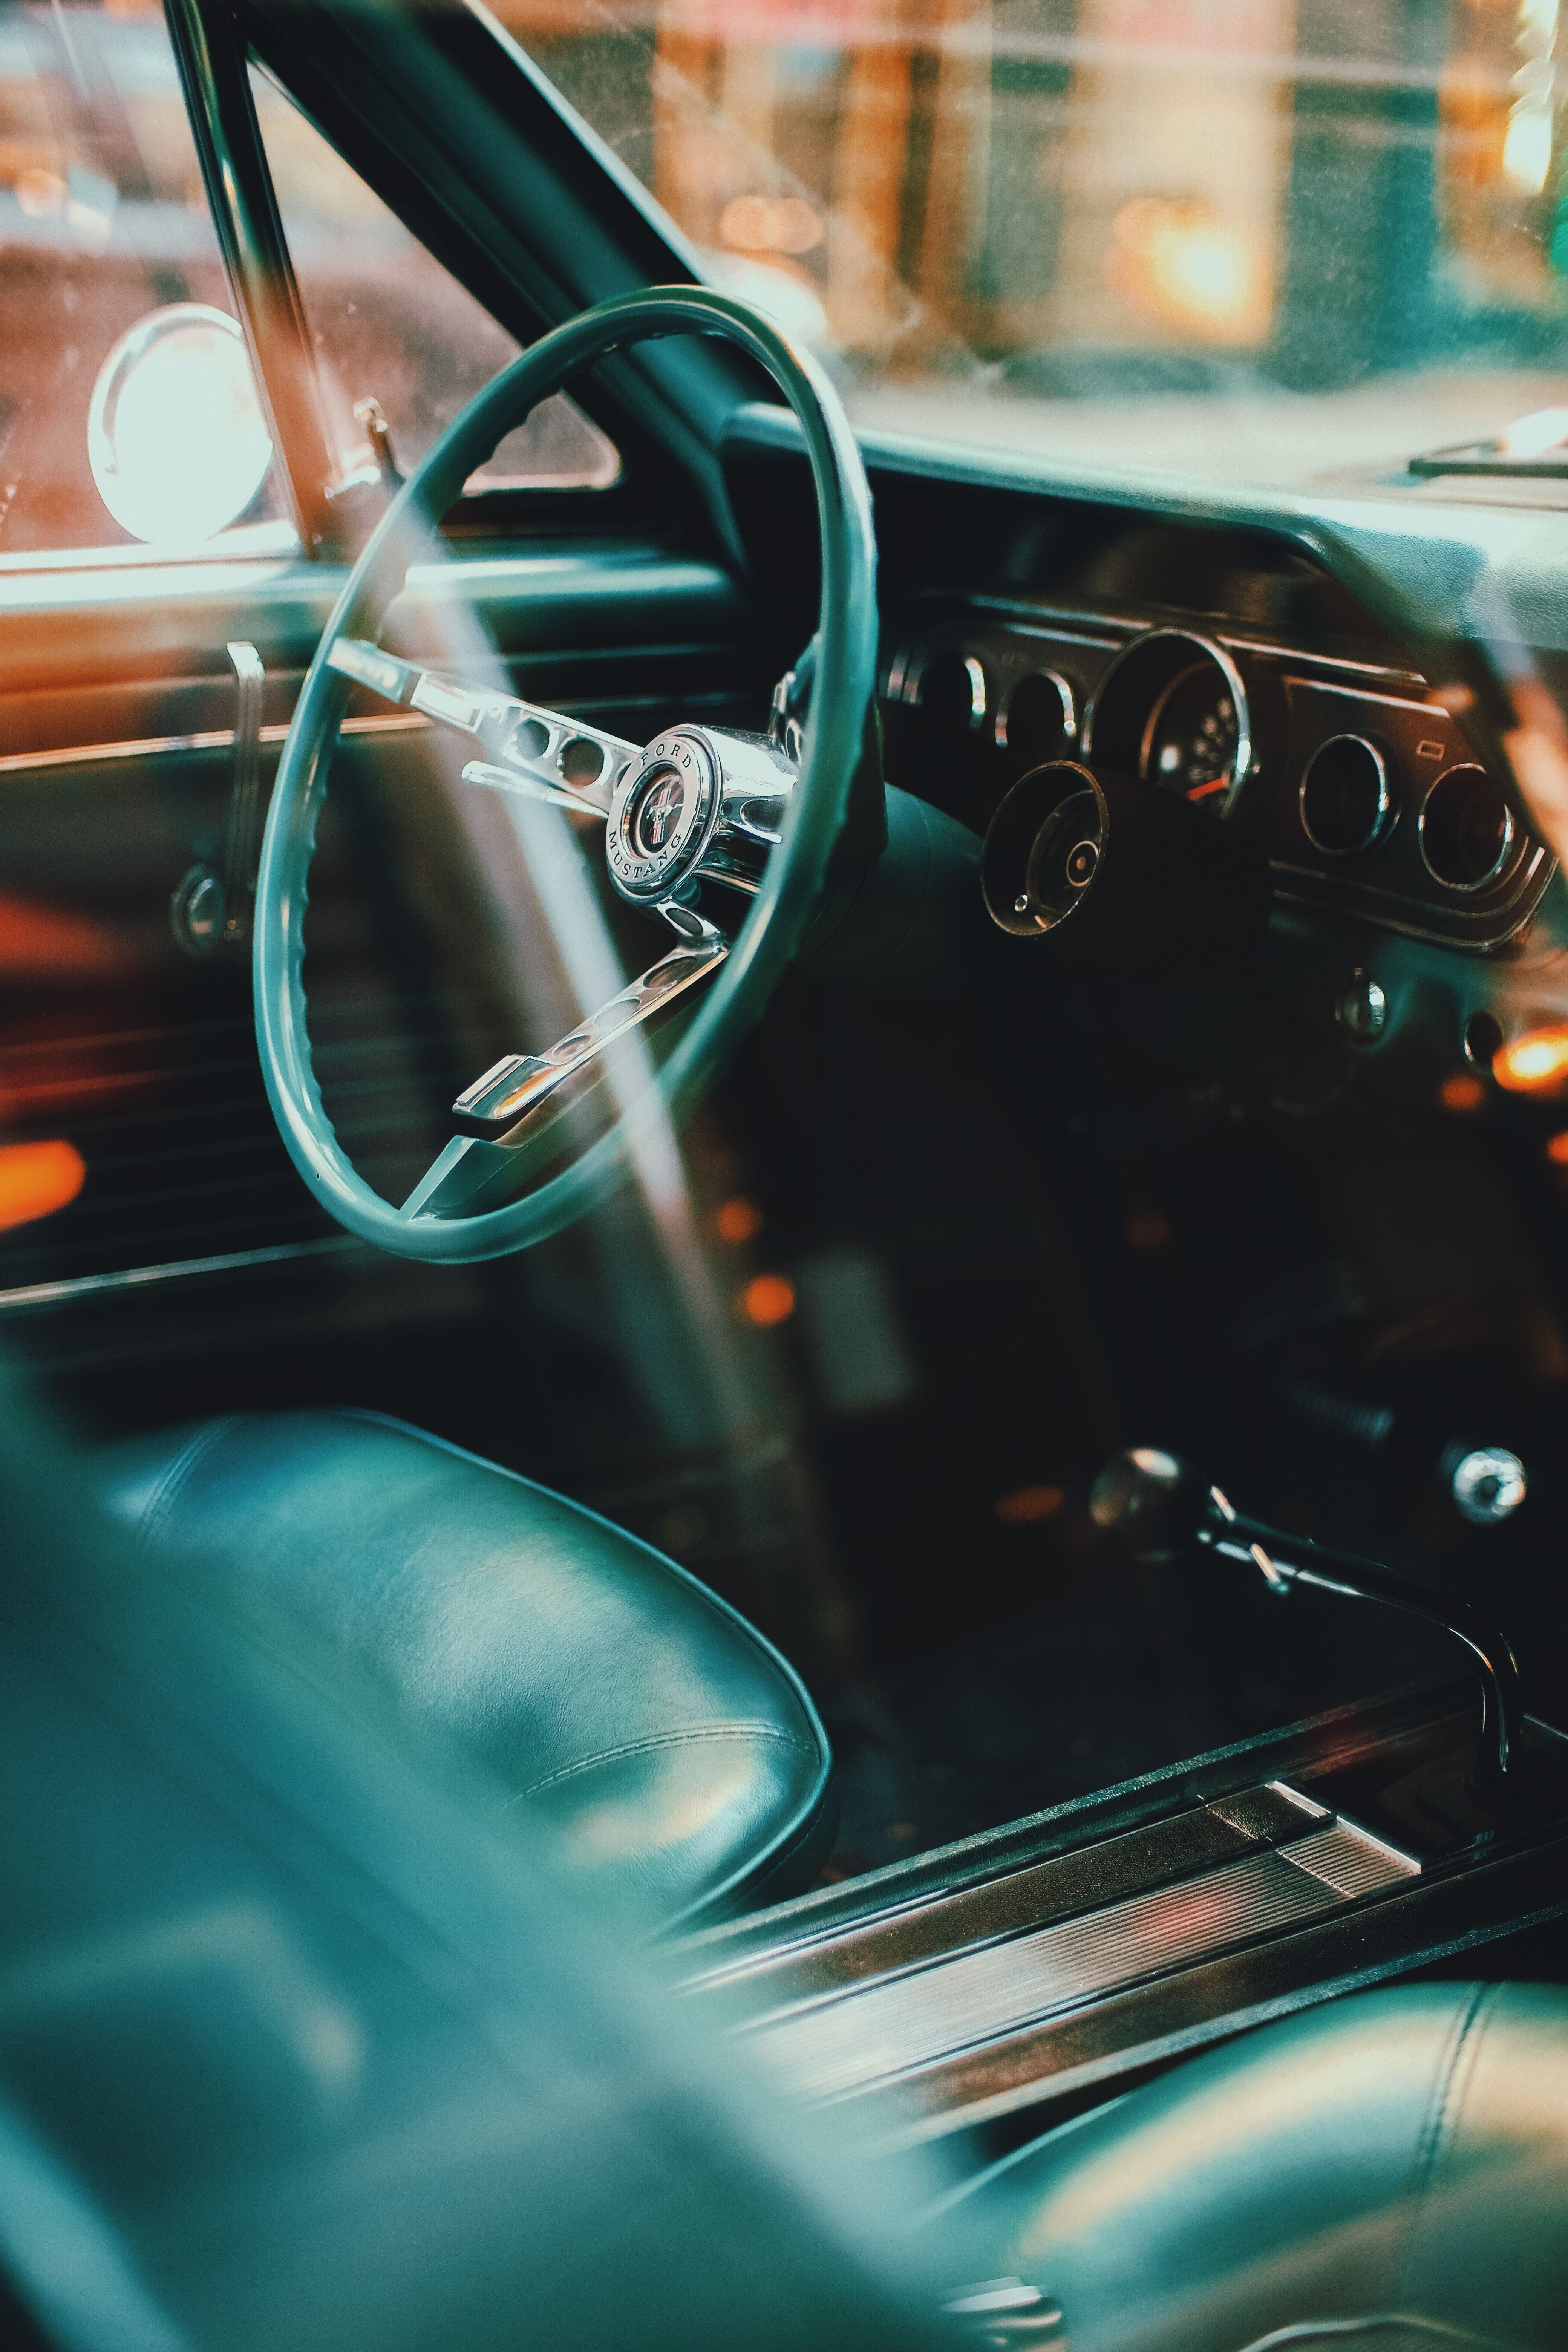 Restore Or Modify Your Classic Ford Mustang With The Right Parts From National Parts Depot From Correct Emblems And Dec In 2020 Mustang Ford Mustang Mustang Wallpaper